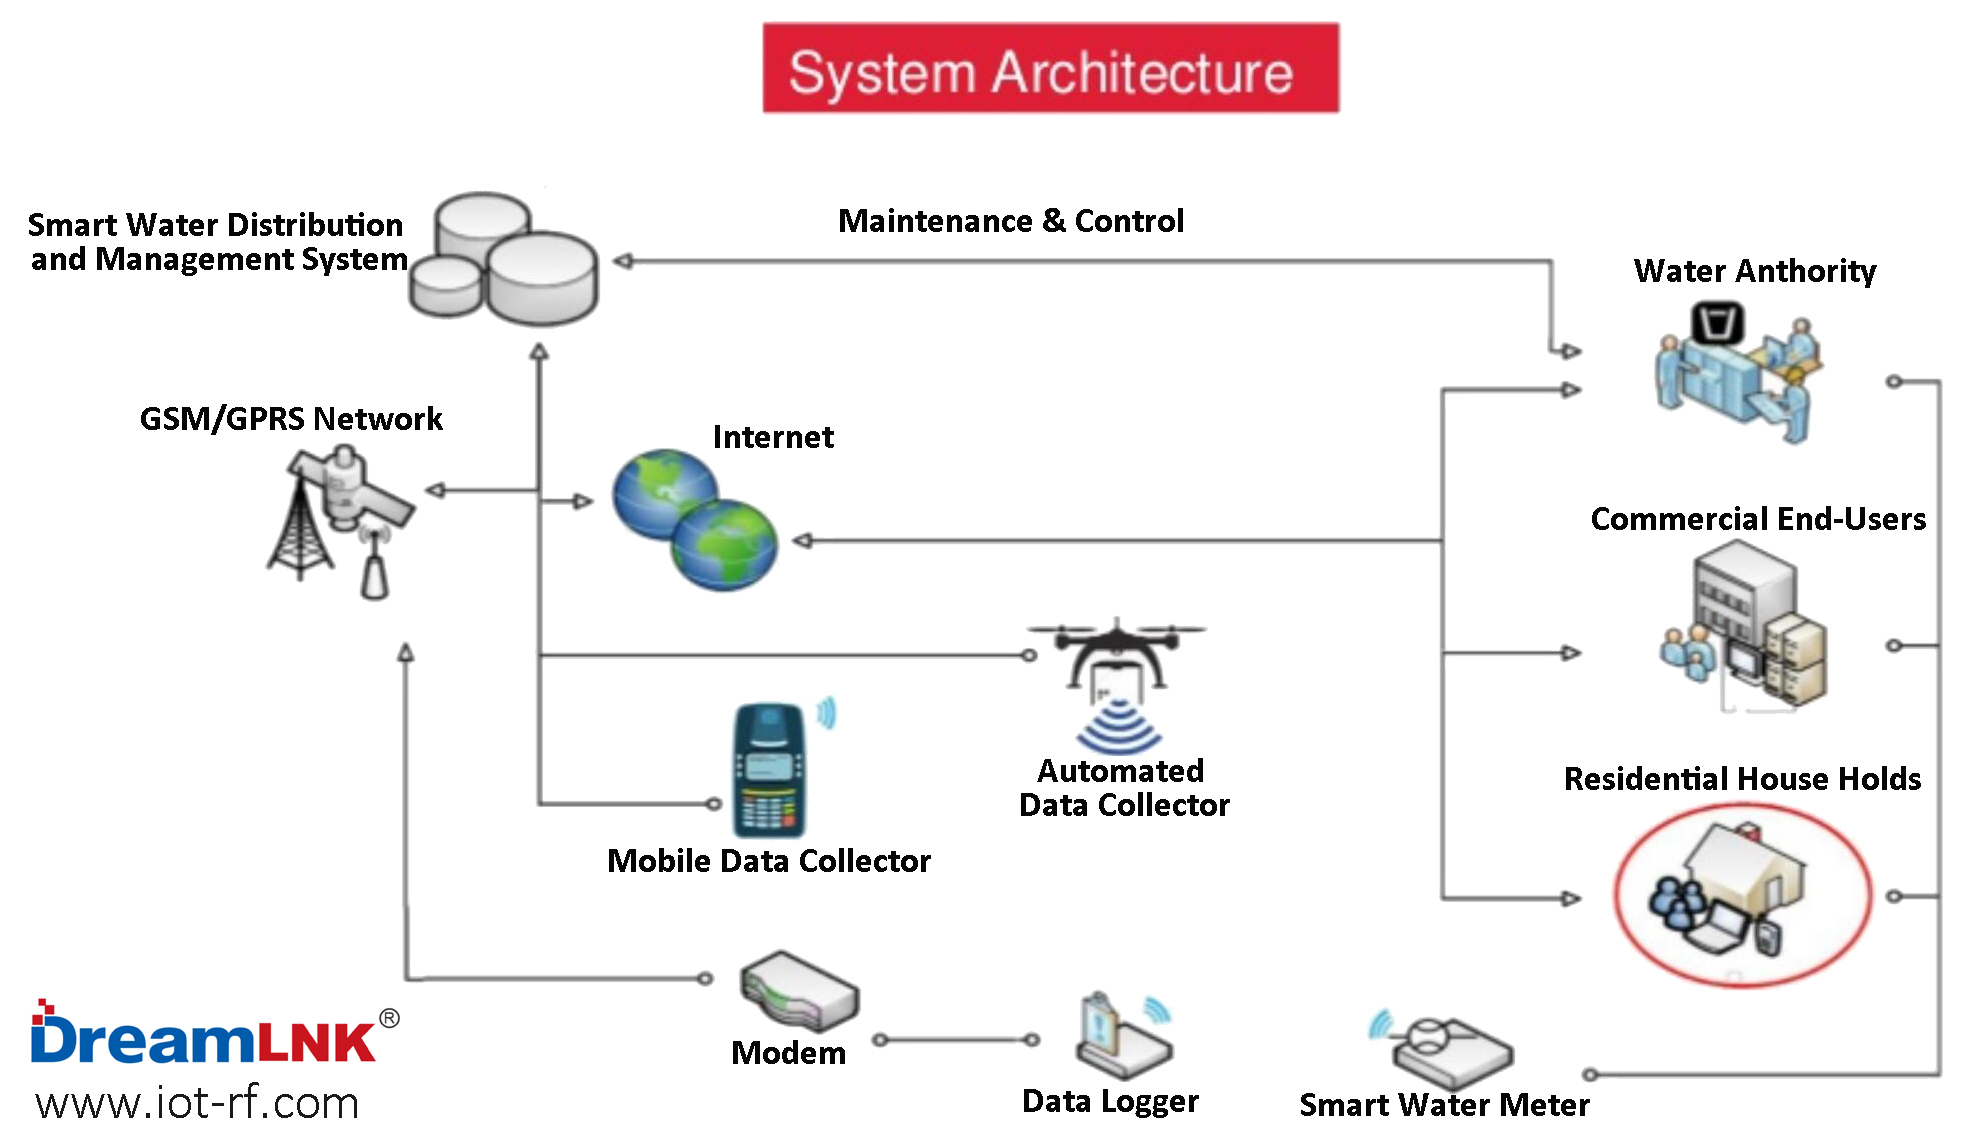 System Architecture of LoRa Smart Water Meters